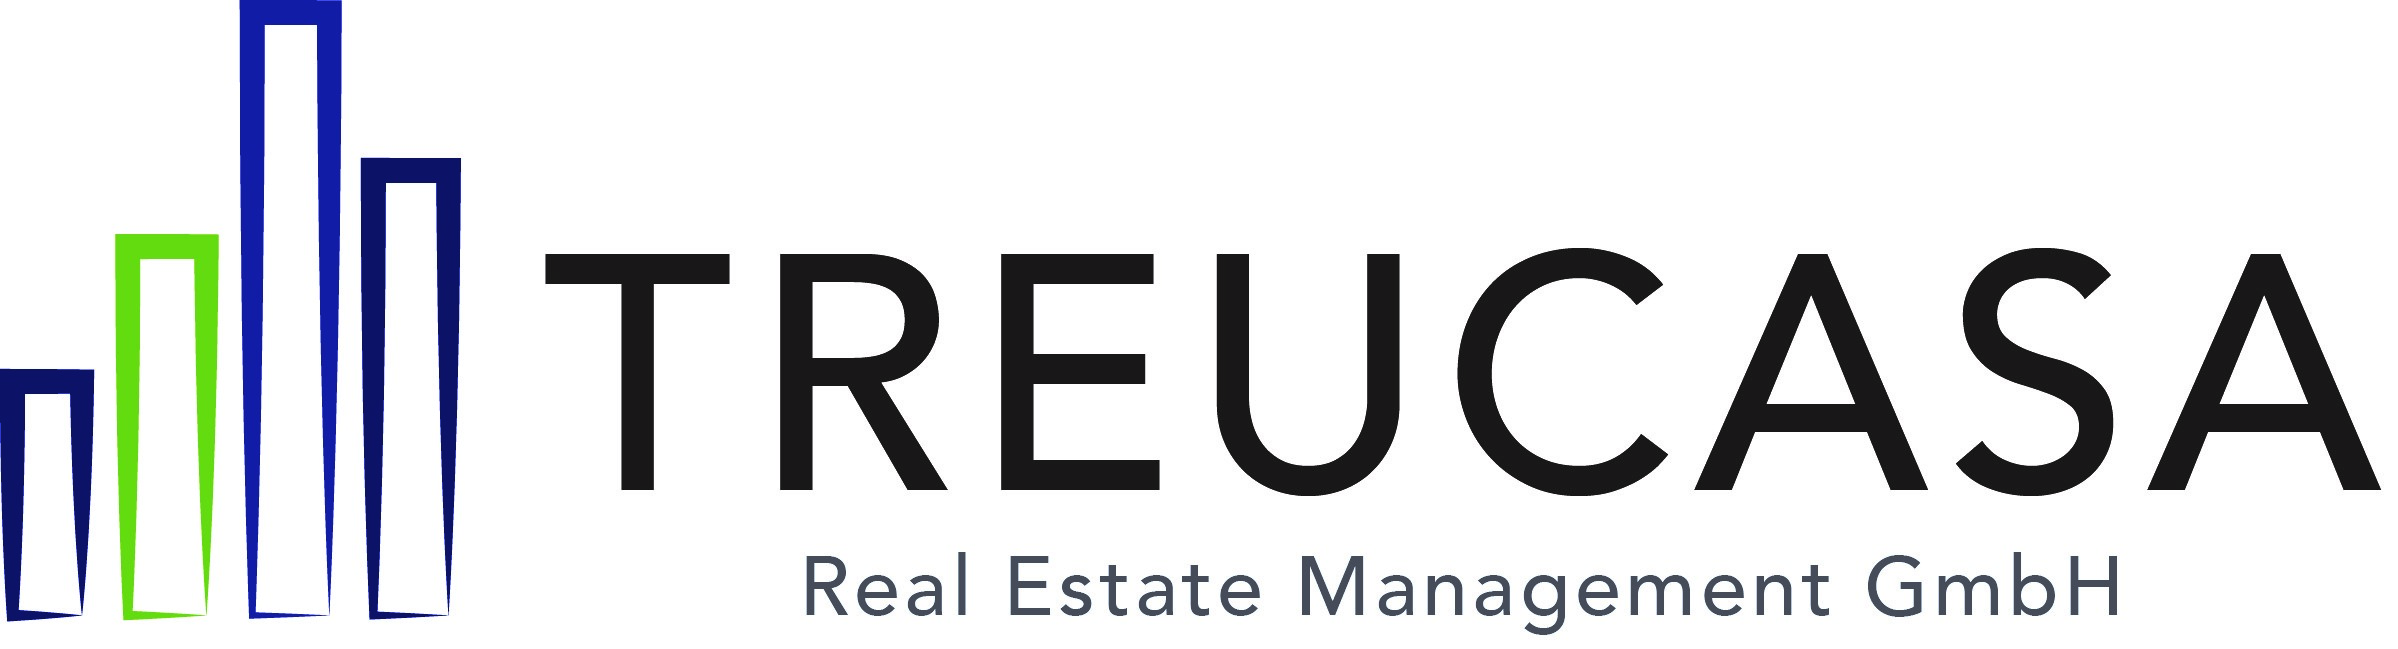 TREUCASA Real Estate Management GmbH